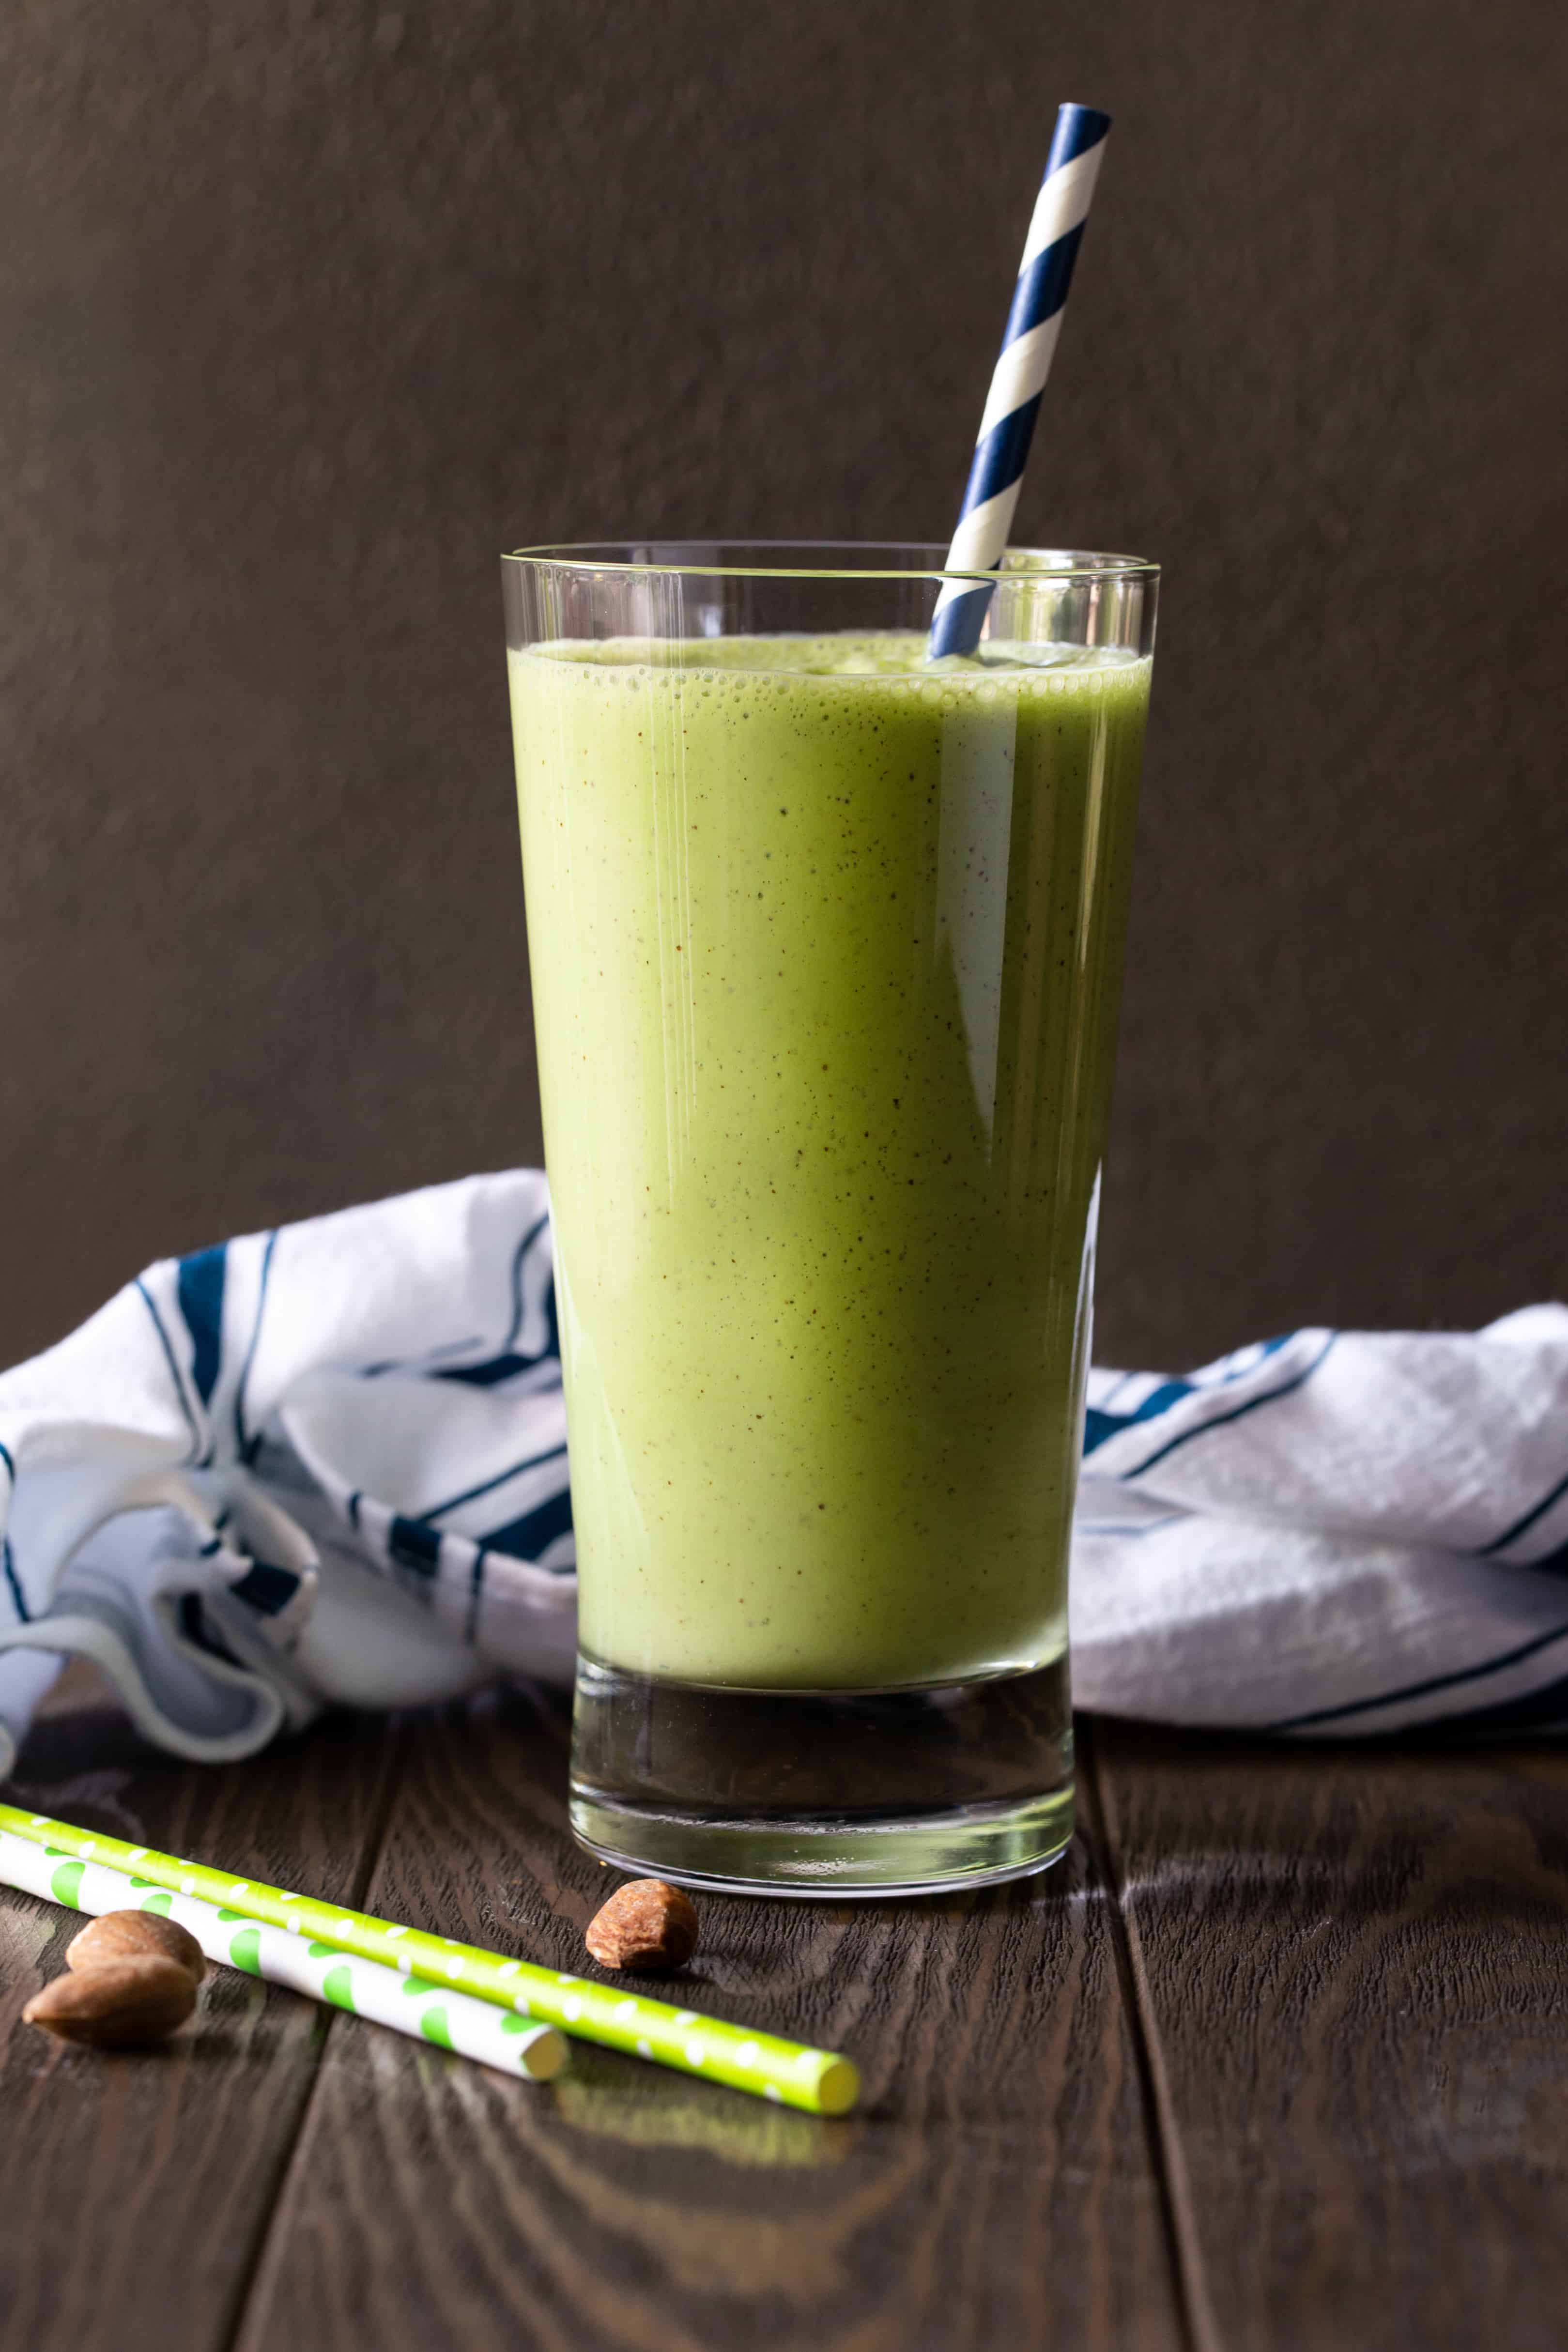 Single glass of blended Banana Spinach Protein Smoothie with a blue and white striped straw.